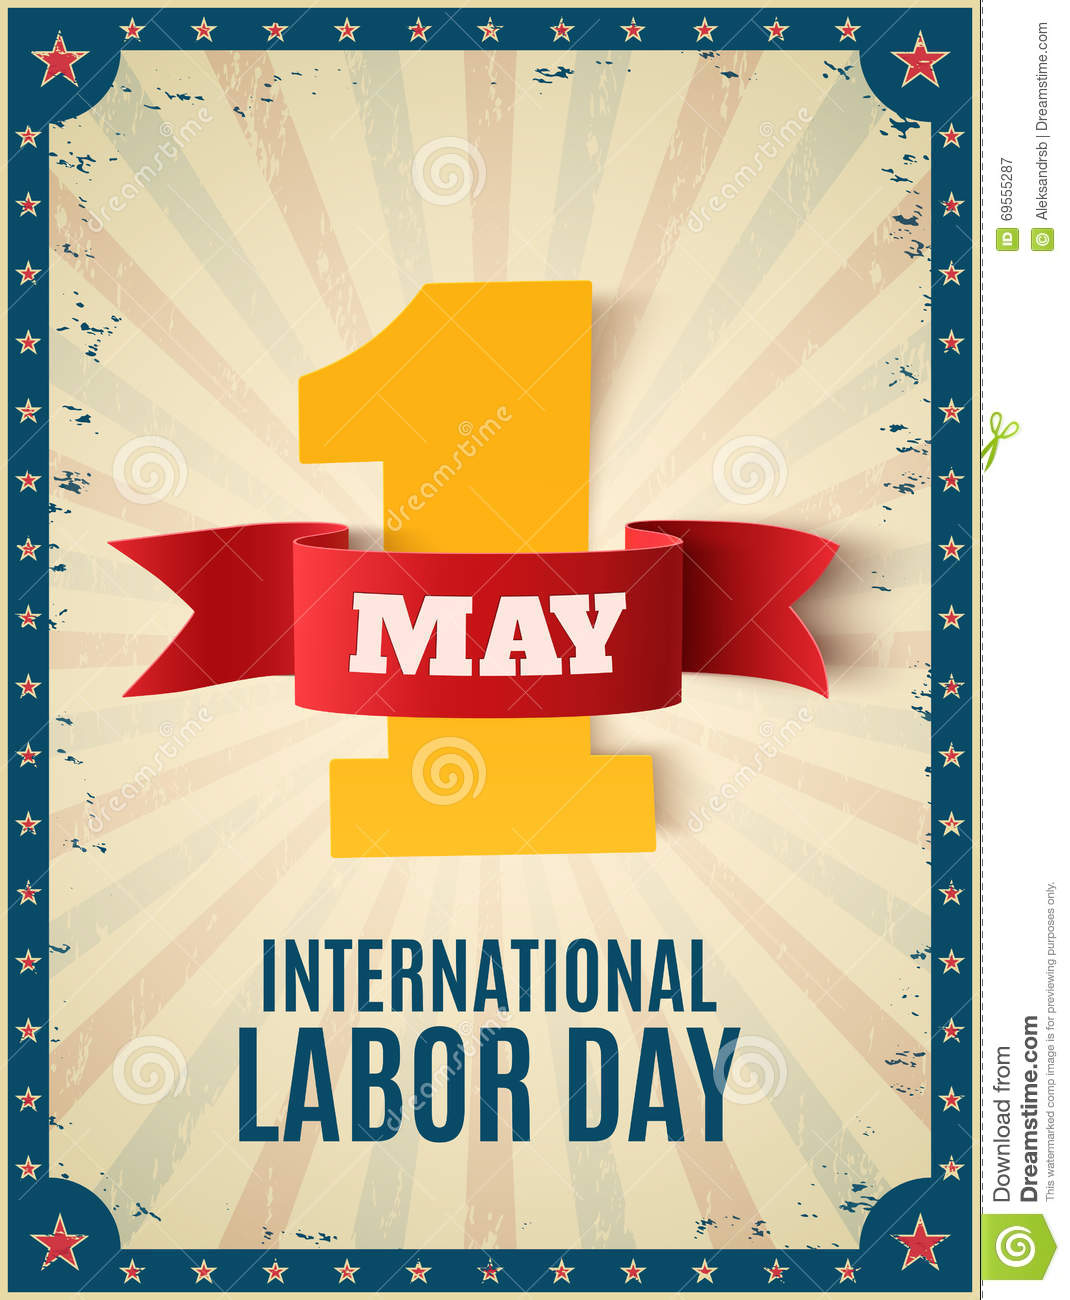 May 1st labor day background template stock vector labor day background template kristyandbryce Image collections